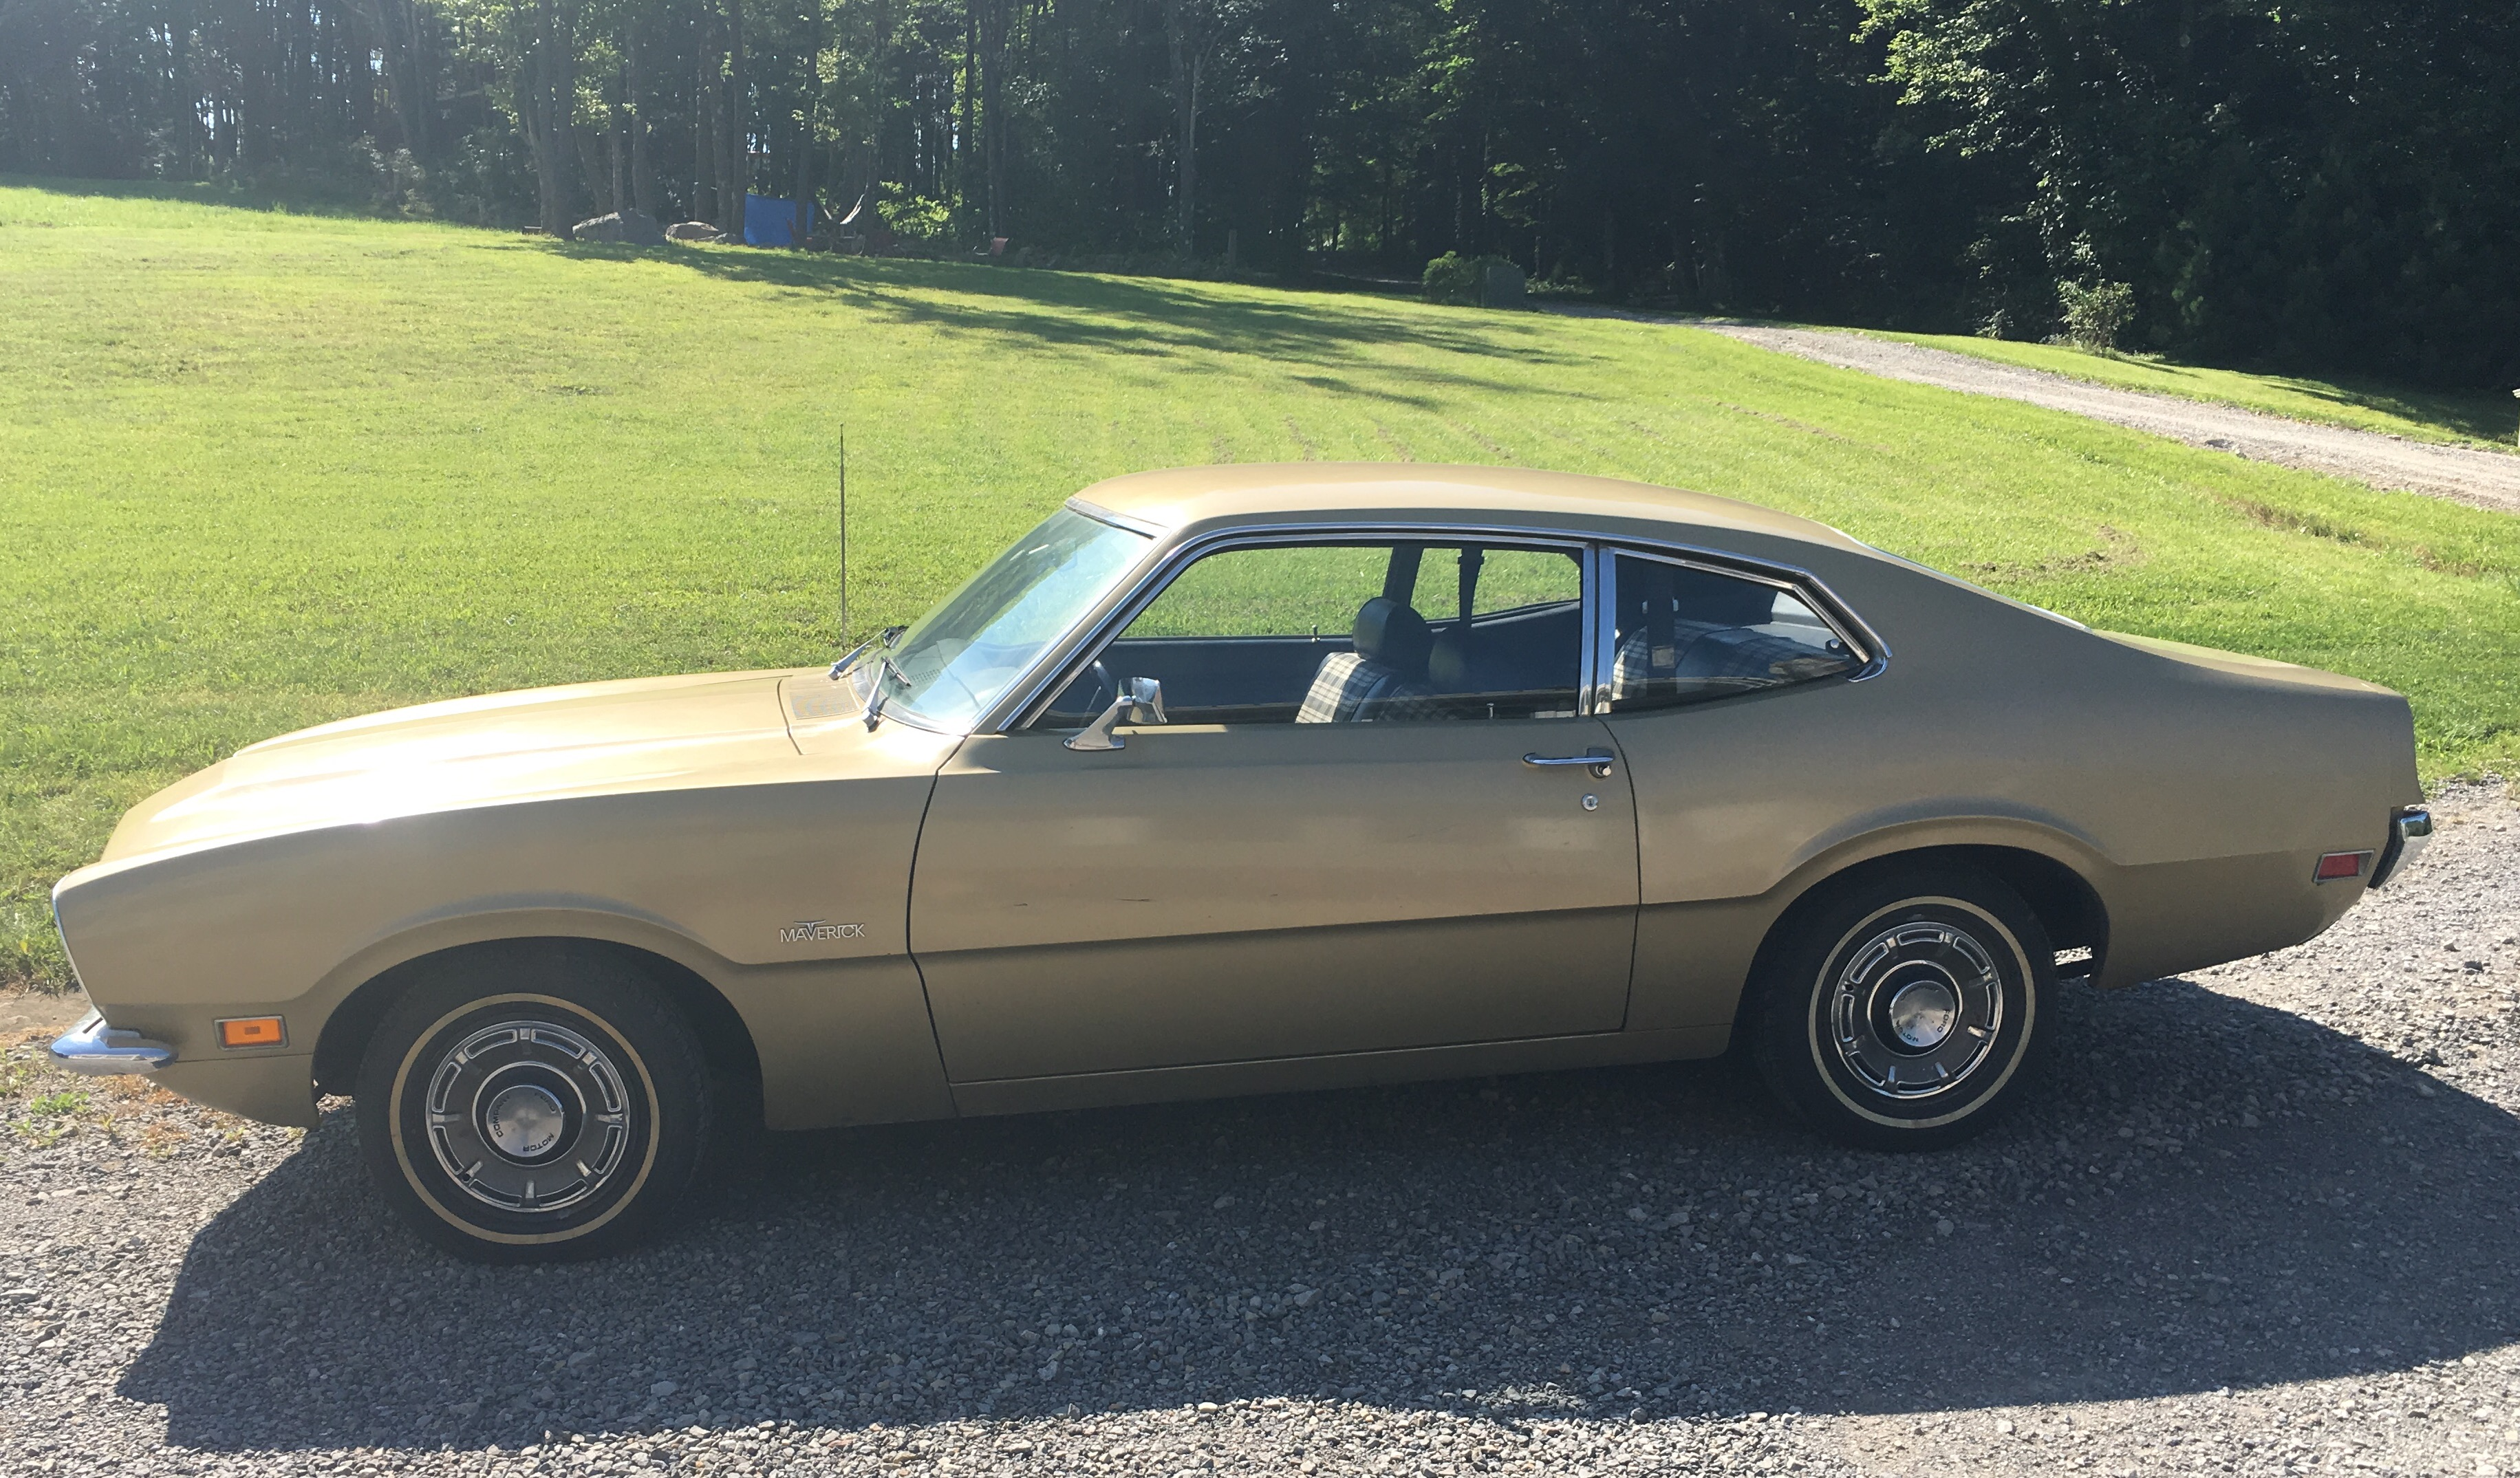 Ford Maverick For Sale >> Ebay Sale 1970 Ford Maverick 21 000 Miles Original Cars For